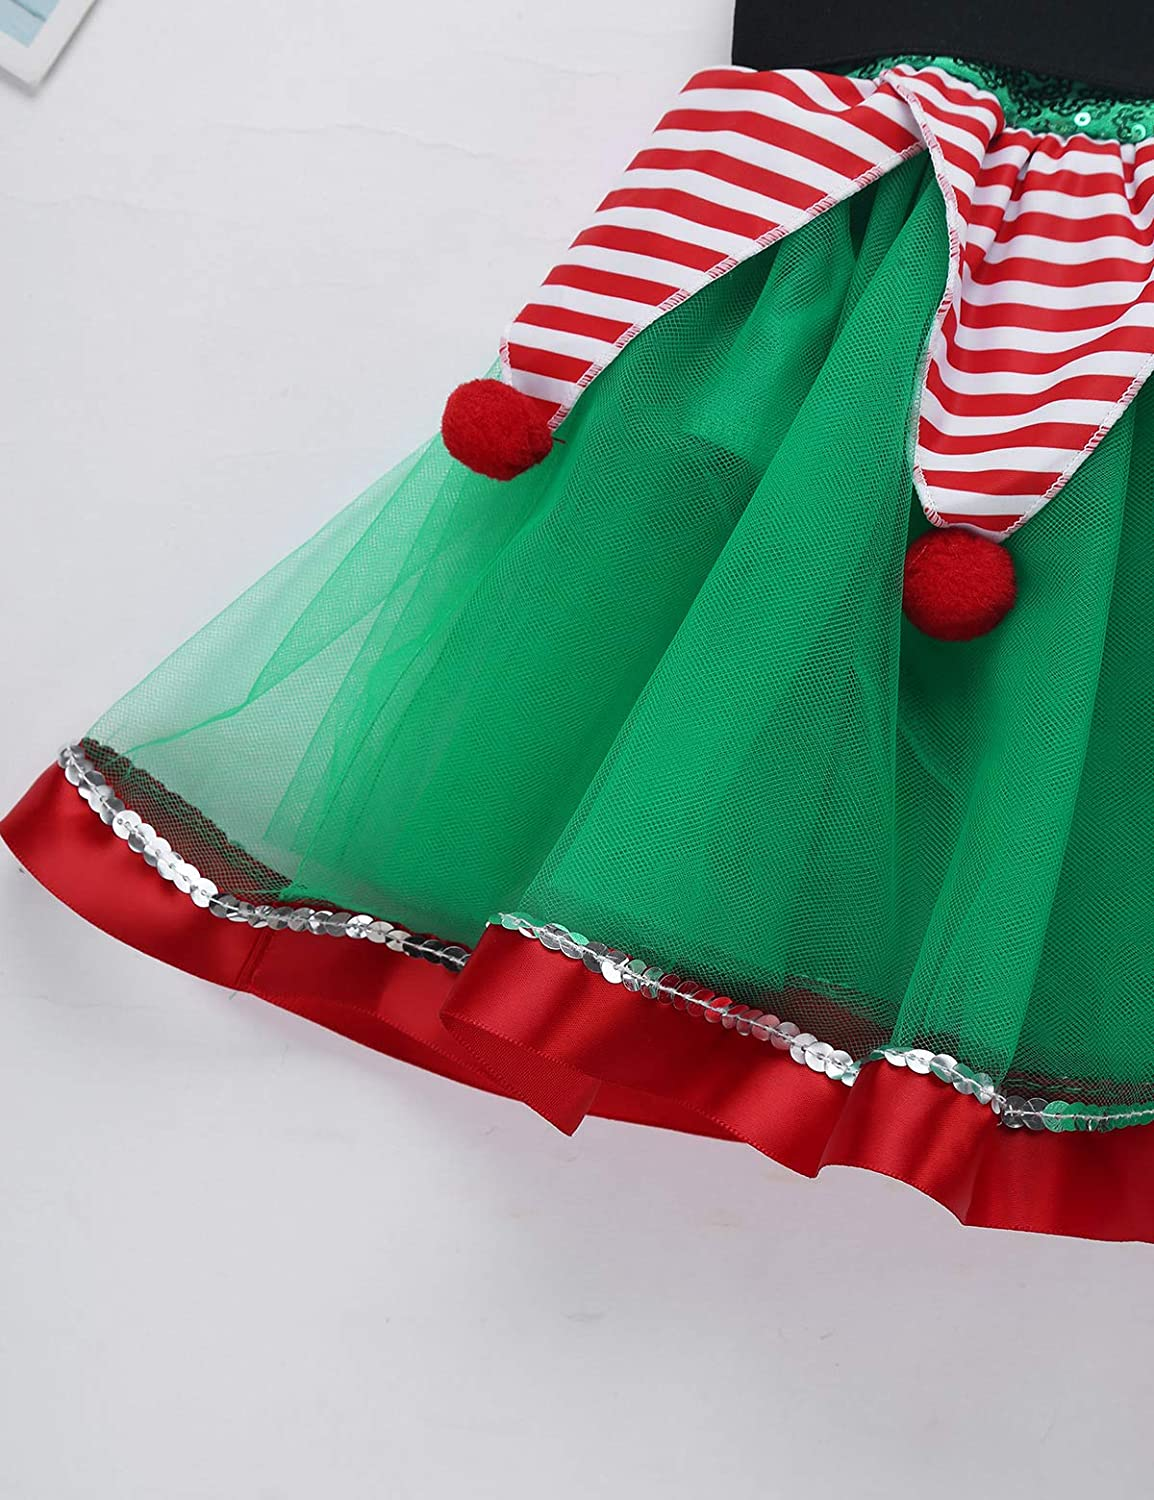 moily Little Girls Santa Claus Spirirt Costume Sequined Tutu Dress for Christmas Halloween Party Dancewear